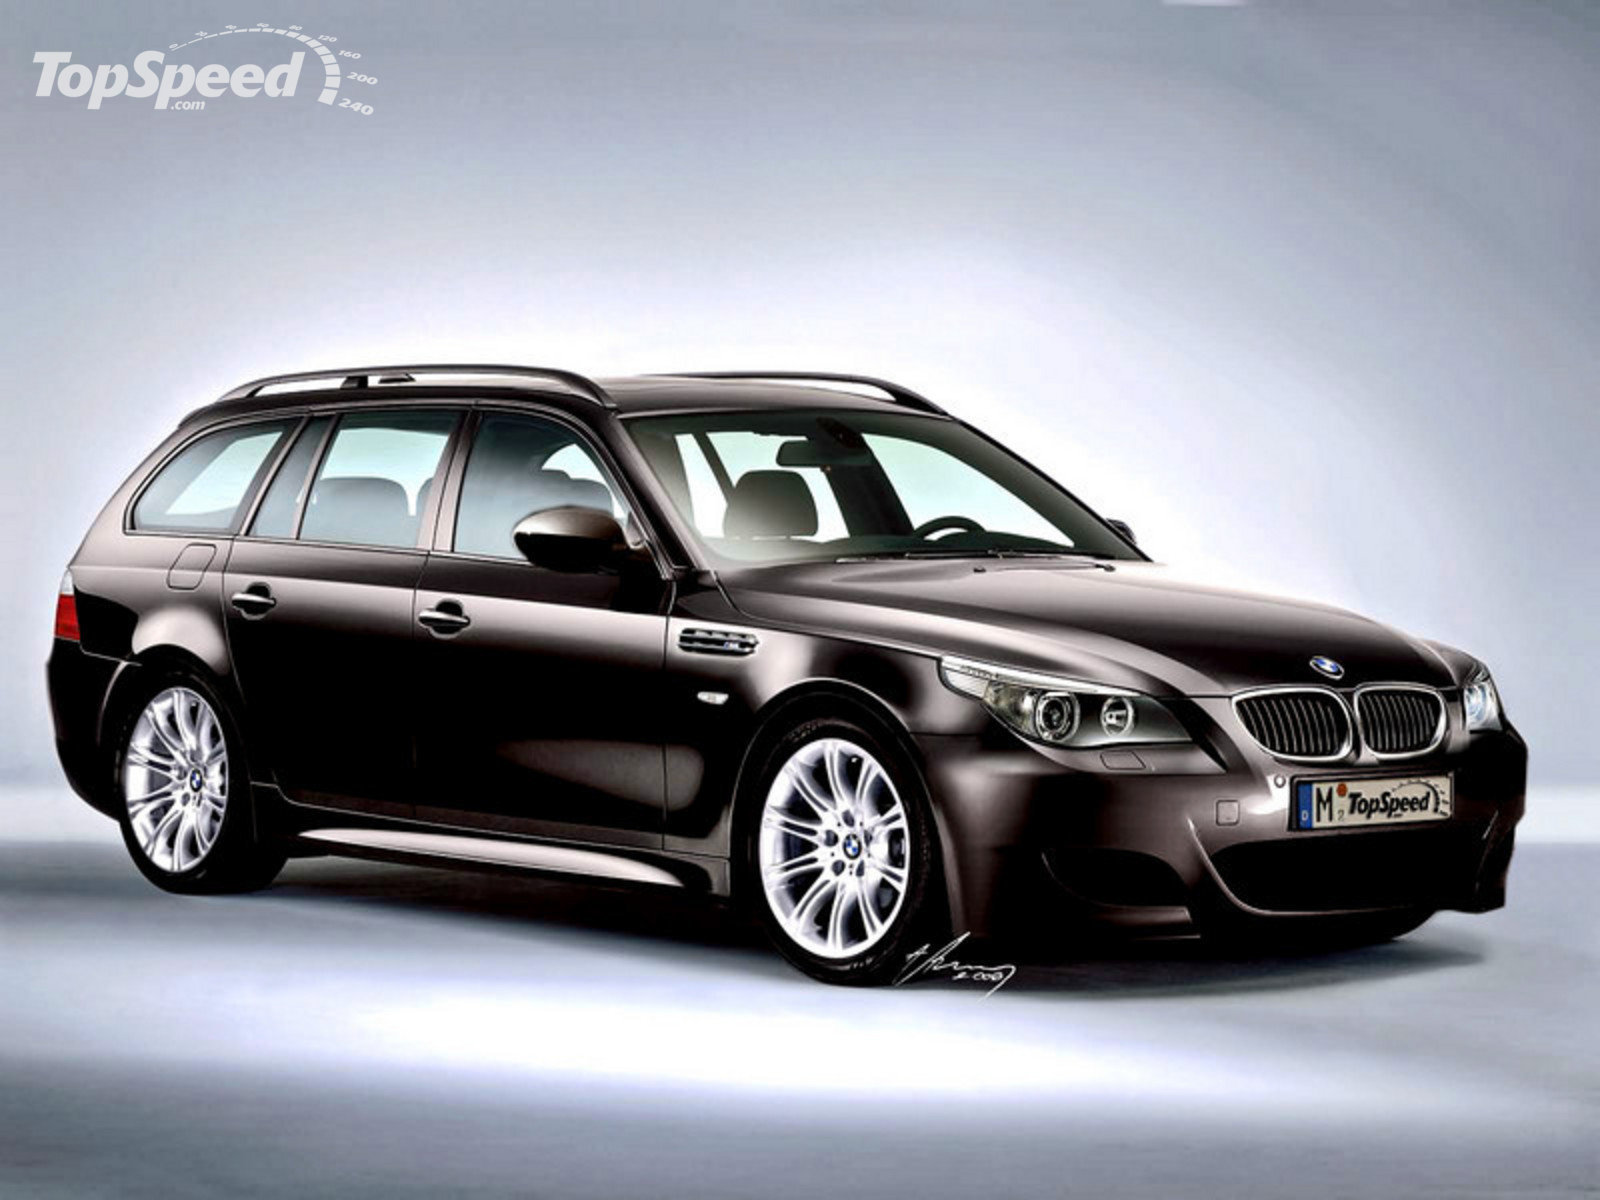 2007 bmw m5 touring preview review gallery top speed. Black Bedroom Furniture Sets. Home Design Ideas